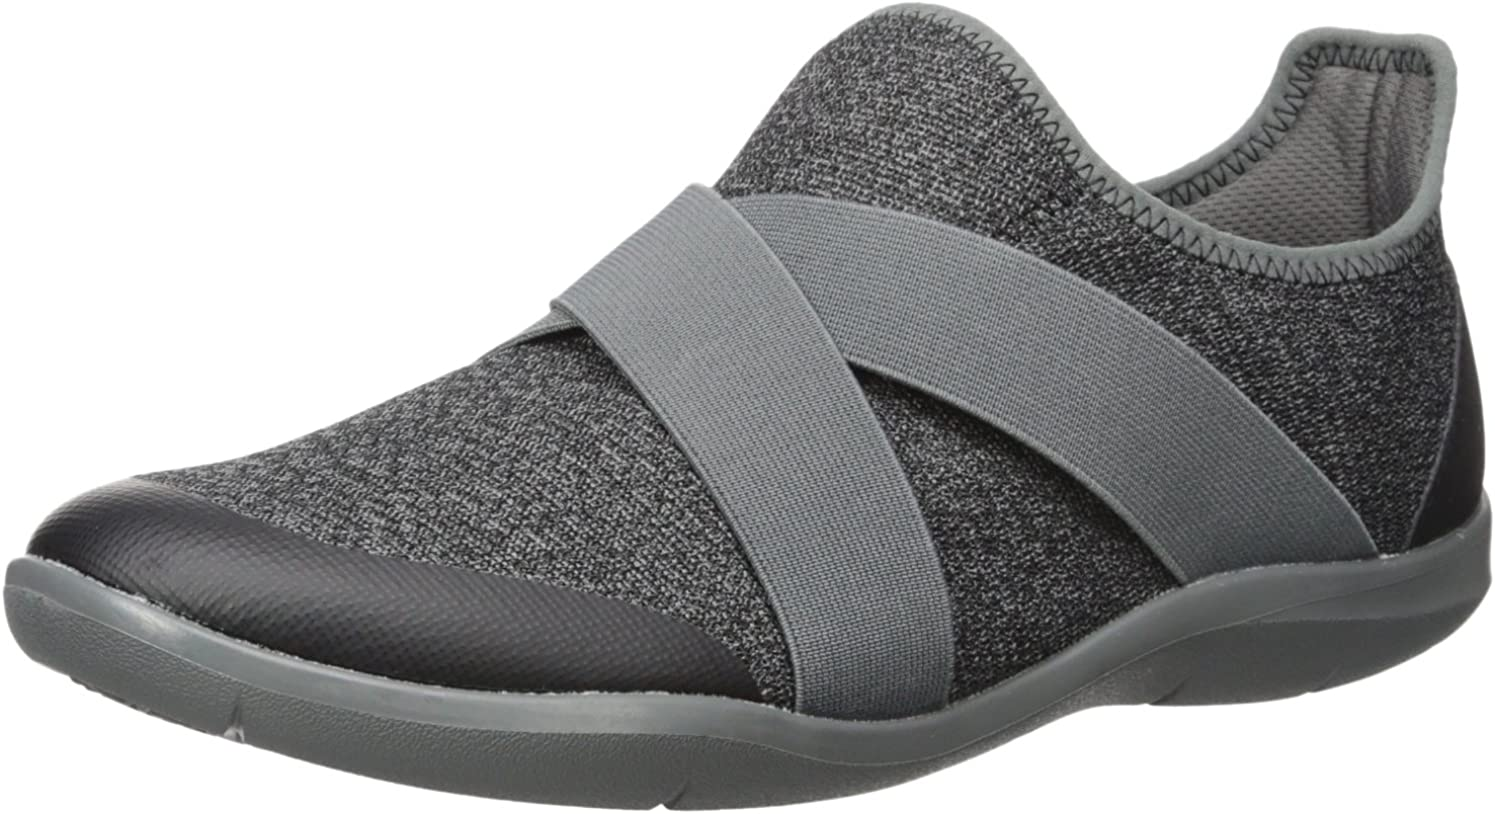 Crocs Women's Dealing full price reduction Max 83% OFF Swiftwater Cross-Strap Flat Static